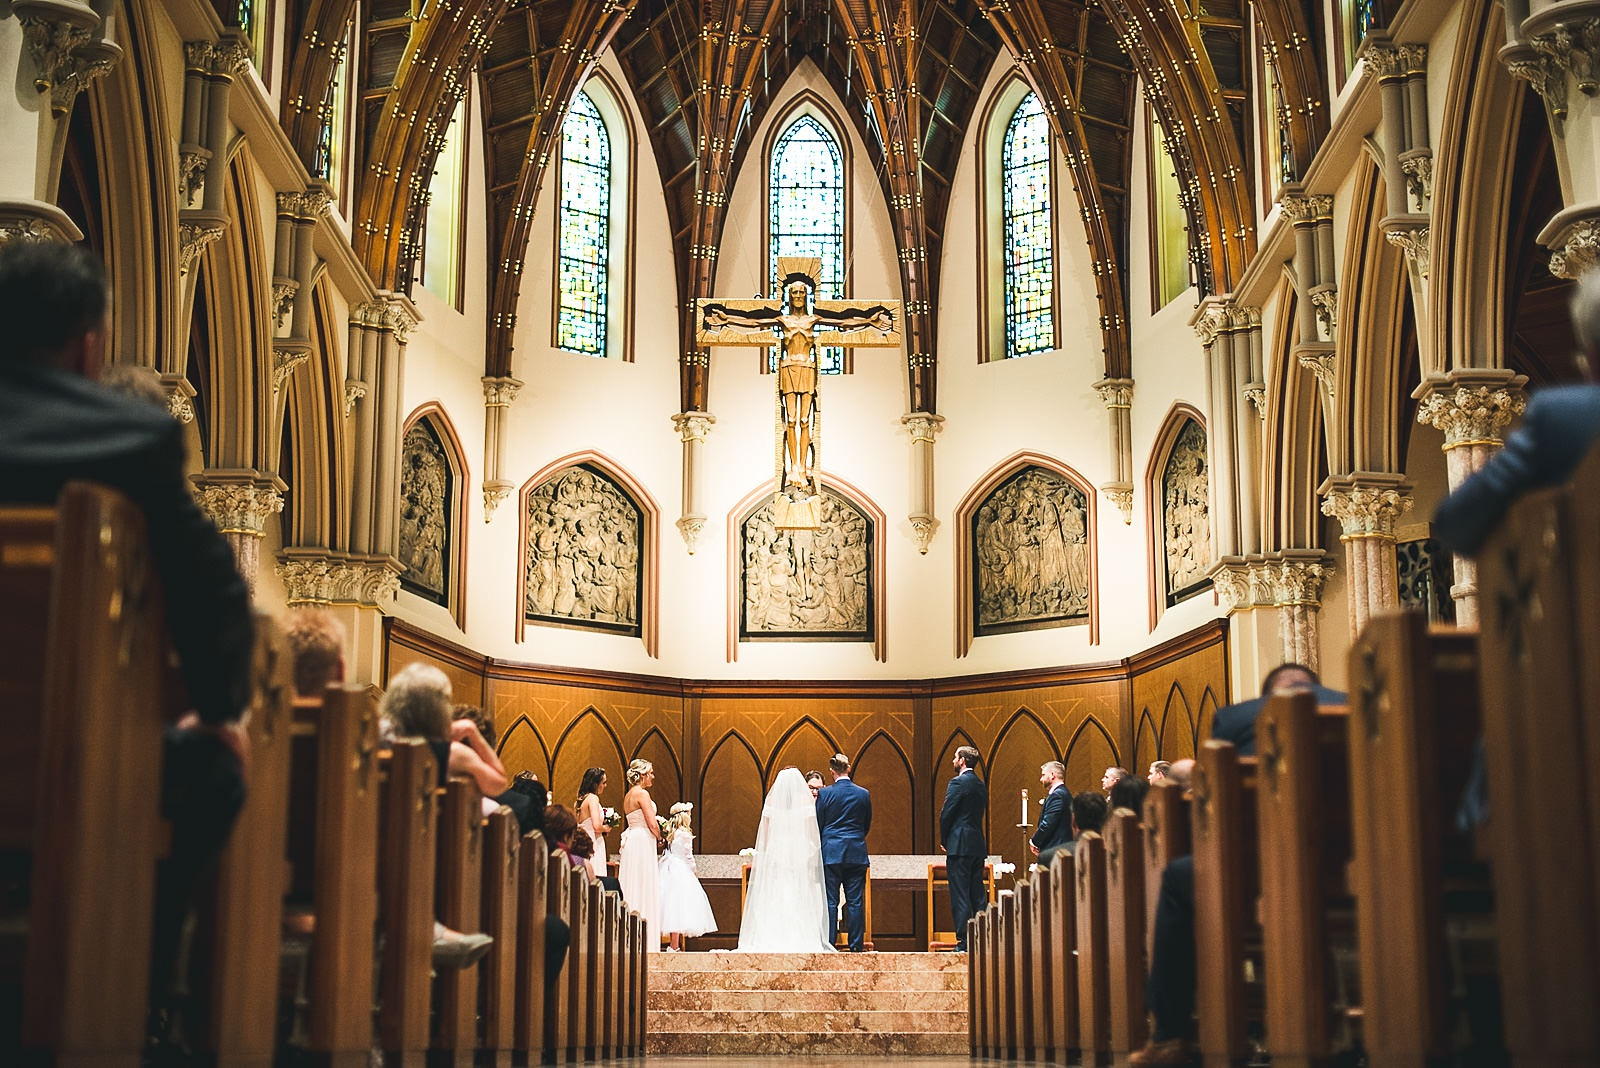 32 amazing church wedding photos - Hilton Chicago Wedding Photographer // Sarah + Aaron